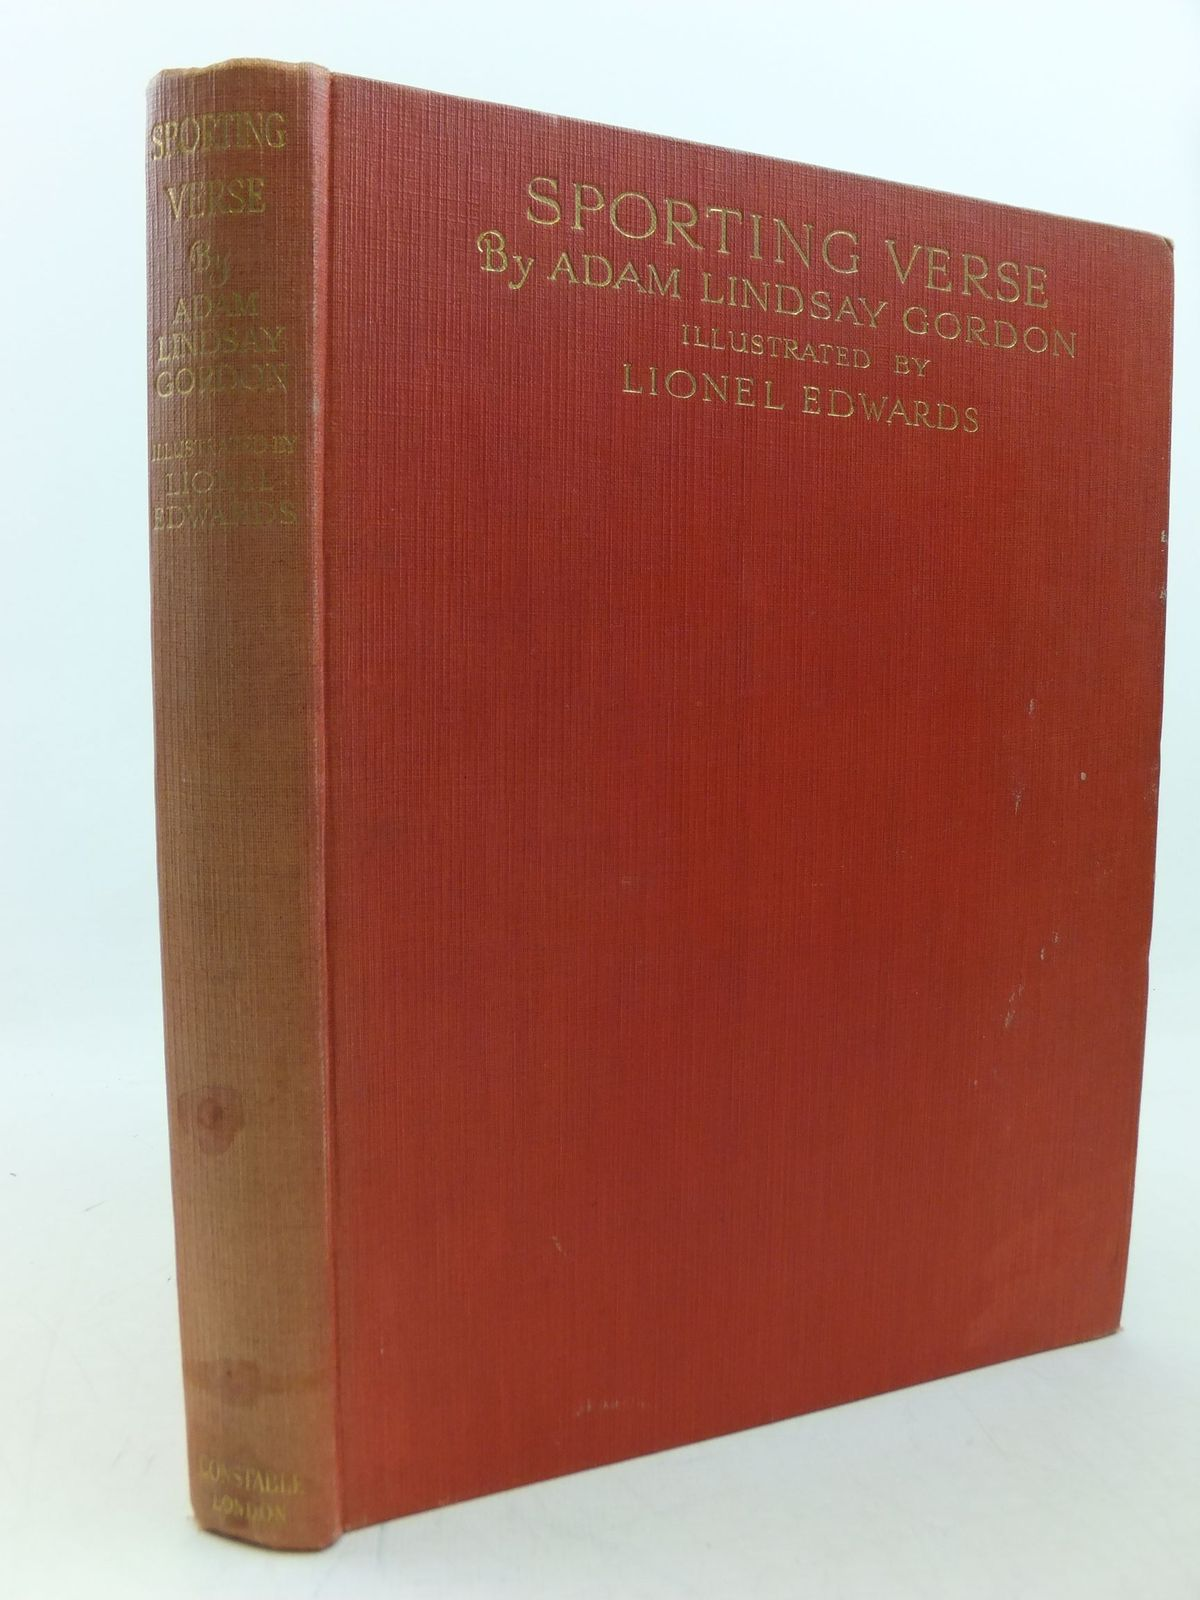 Photo of SPORTING VERSE written by Gordon, Adam Lindsay illustrated by Edwards, Lionel published by Constable & Co. Ltd. (STOCK CODE: 2113378)  for sale by Stella & Rose's Books